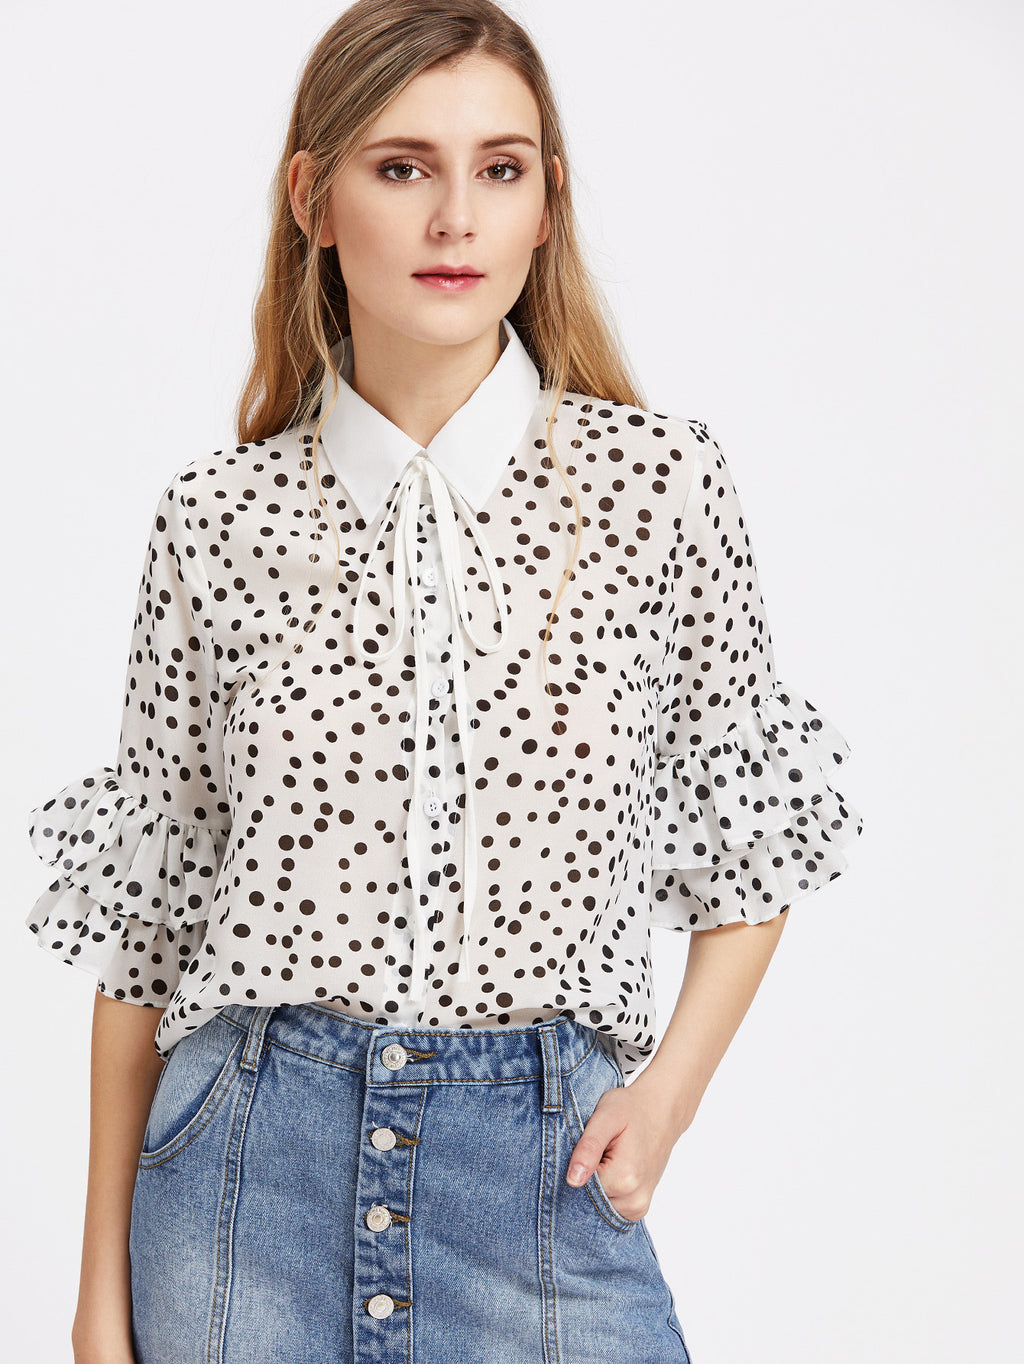 Sparrow Polka Dot Collared Blouse